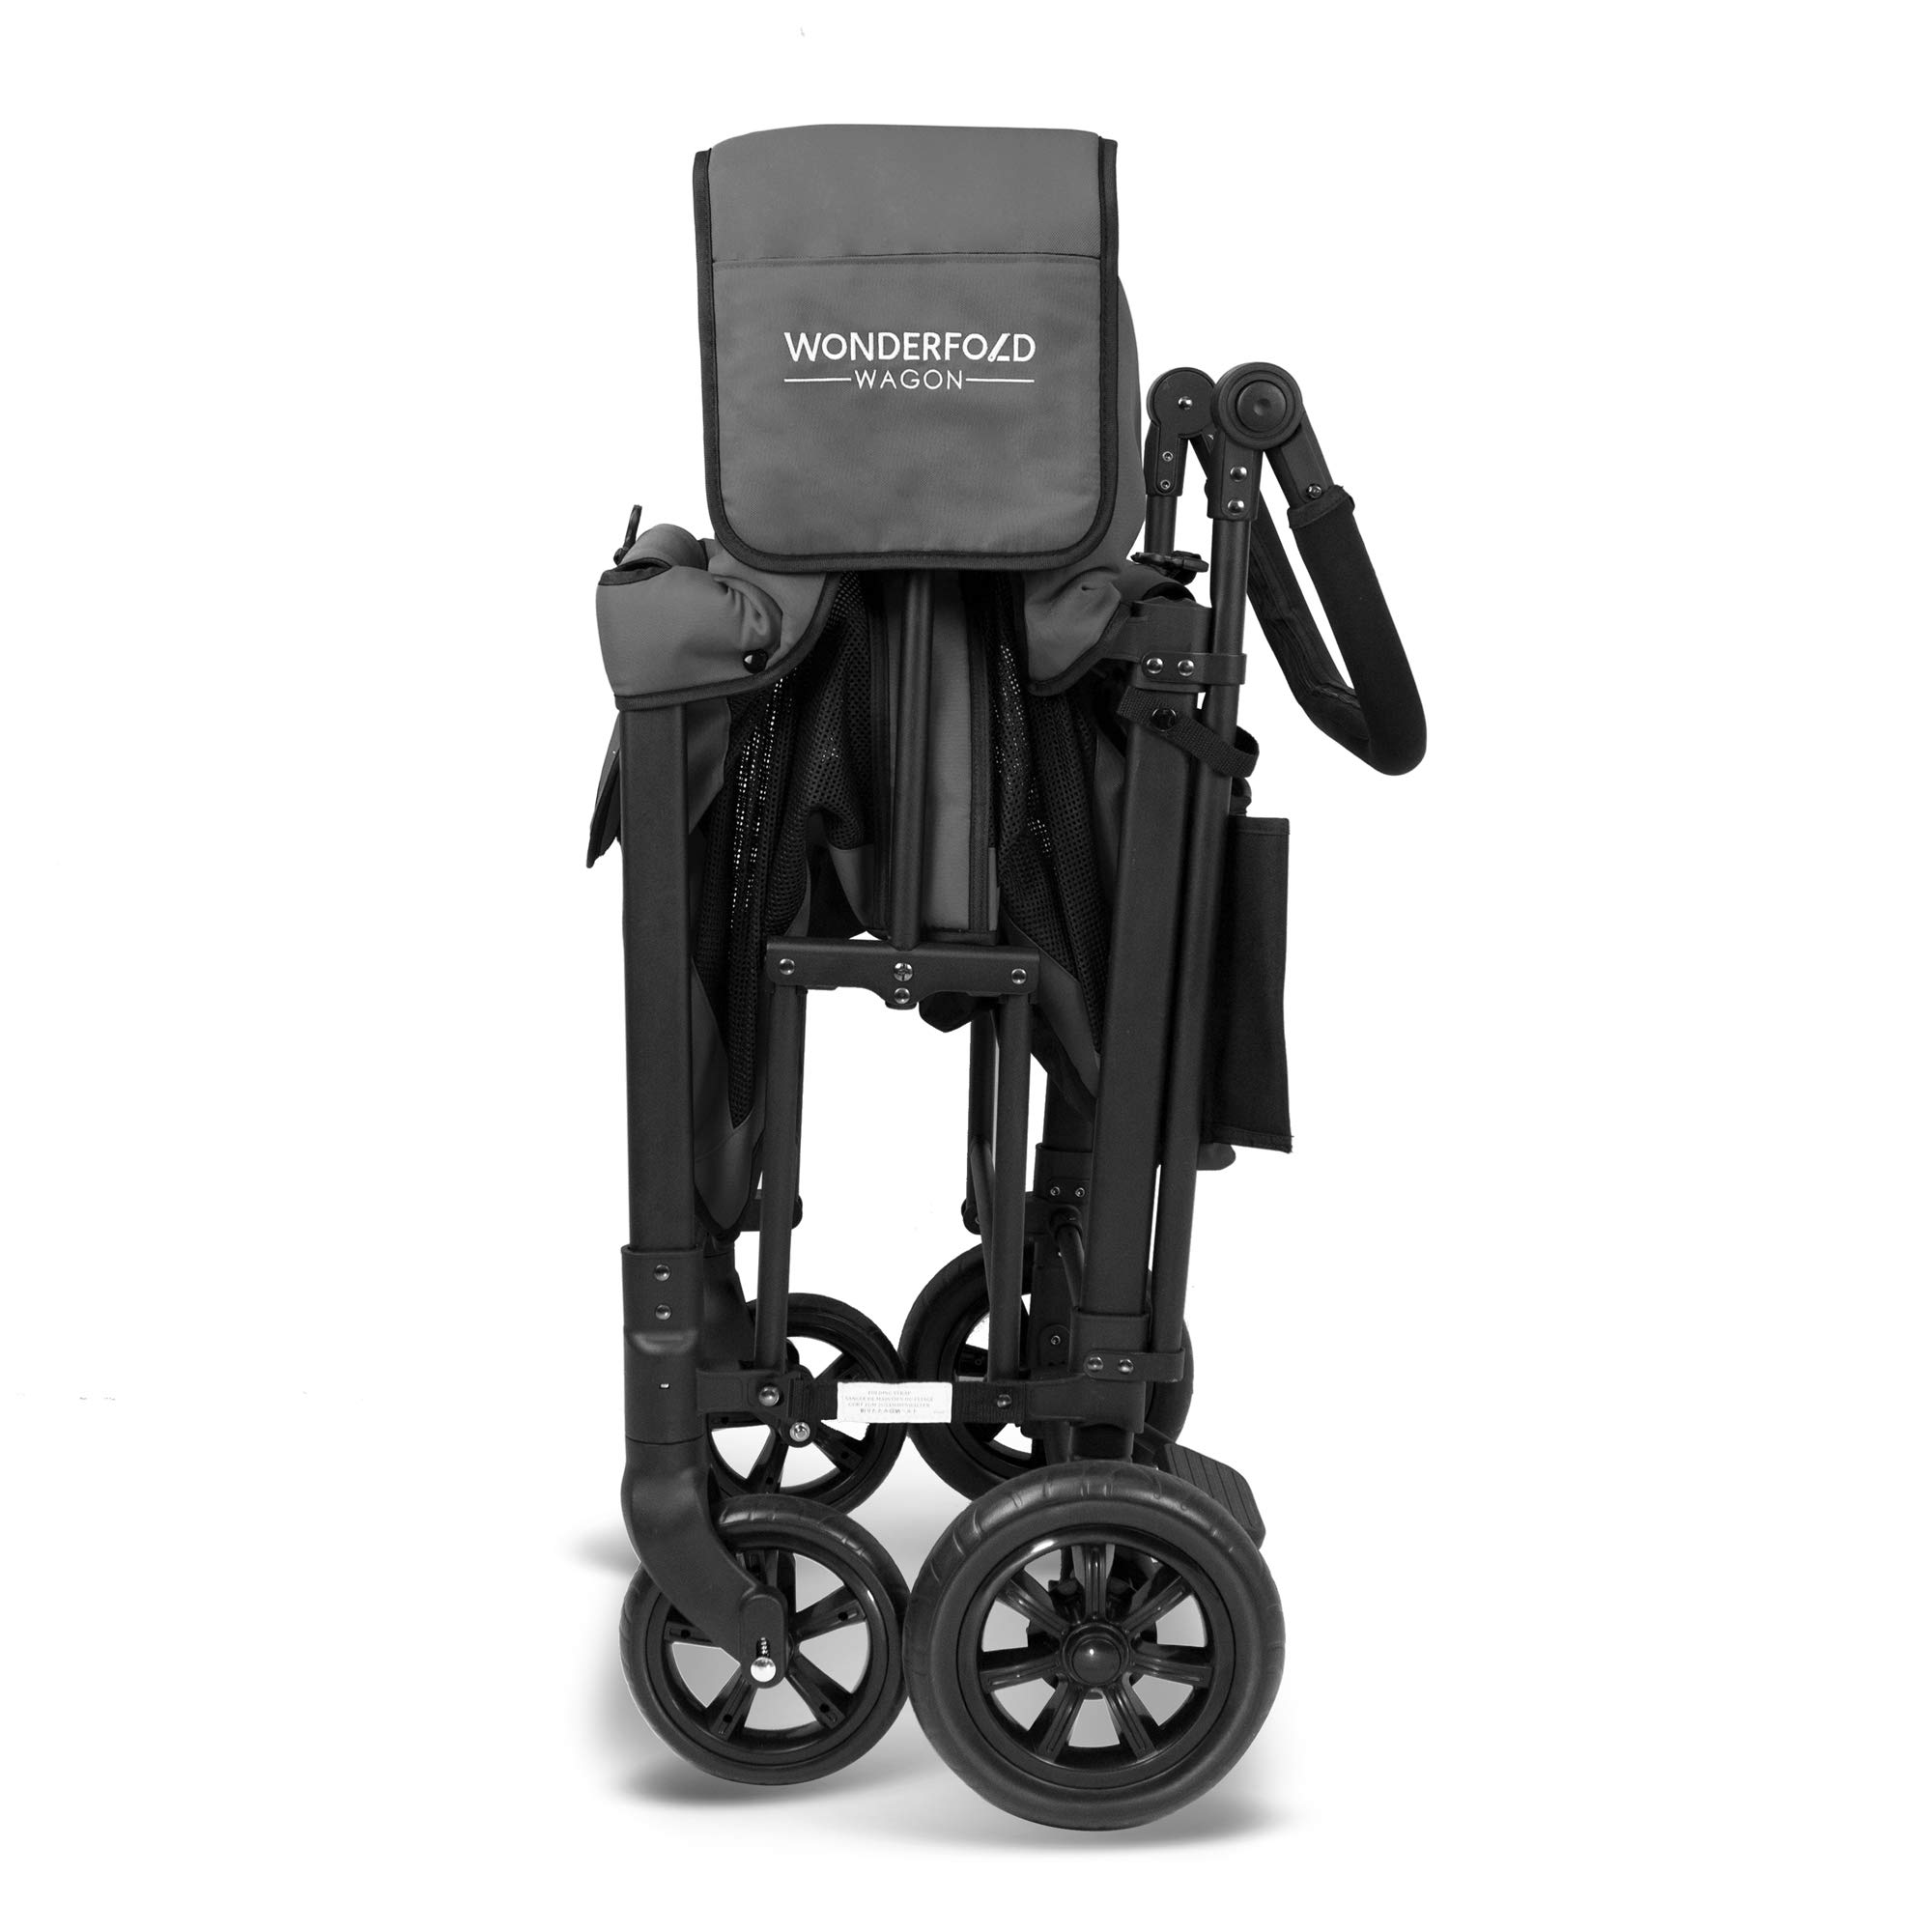 WonderFold Multi-Function Push 2 Passenger Double Folding Stroller, Adjustable Canopy & Removable Chair Seat Up To 2 Toddlers (Charcoal Gray) by WonderFold (Image #6)